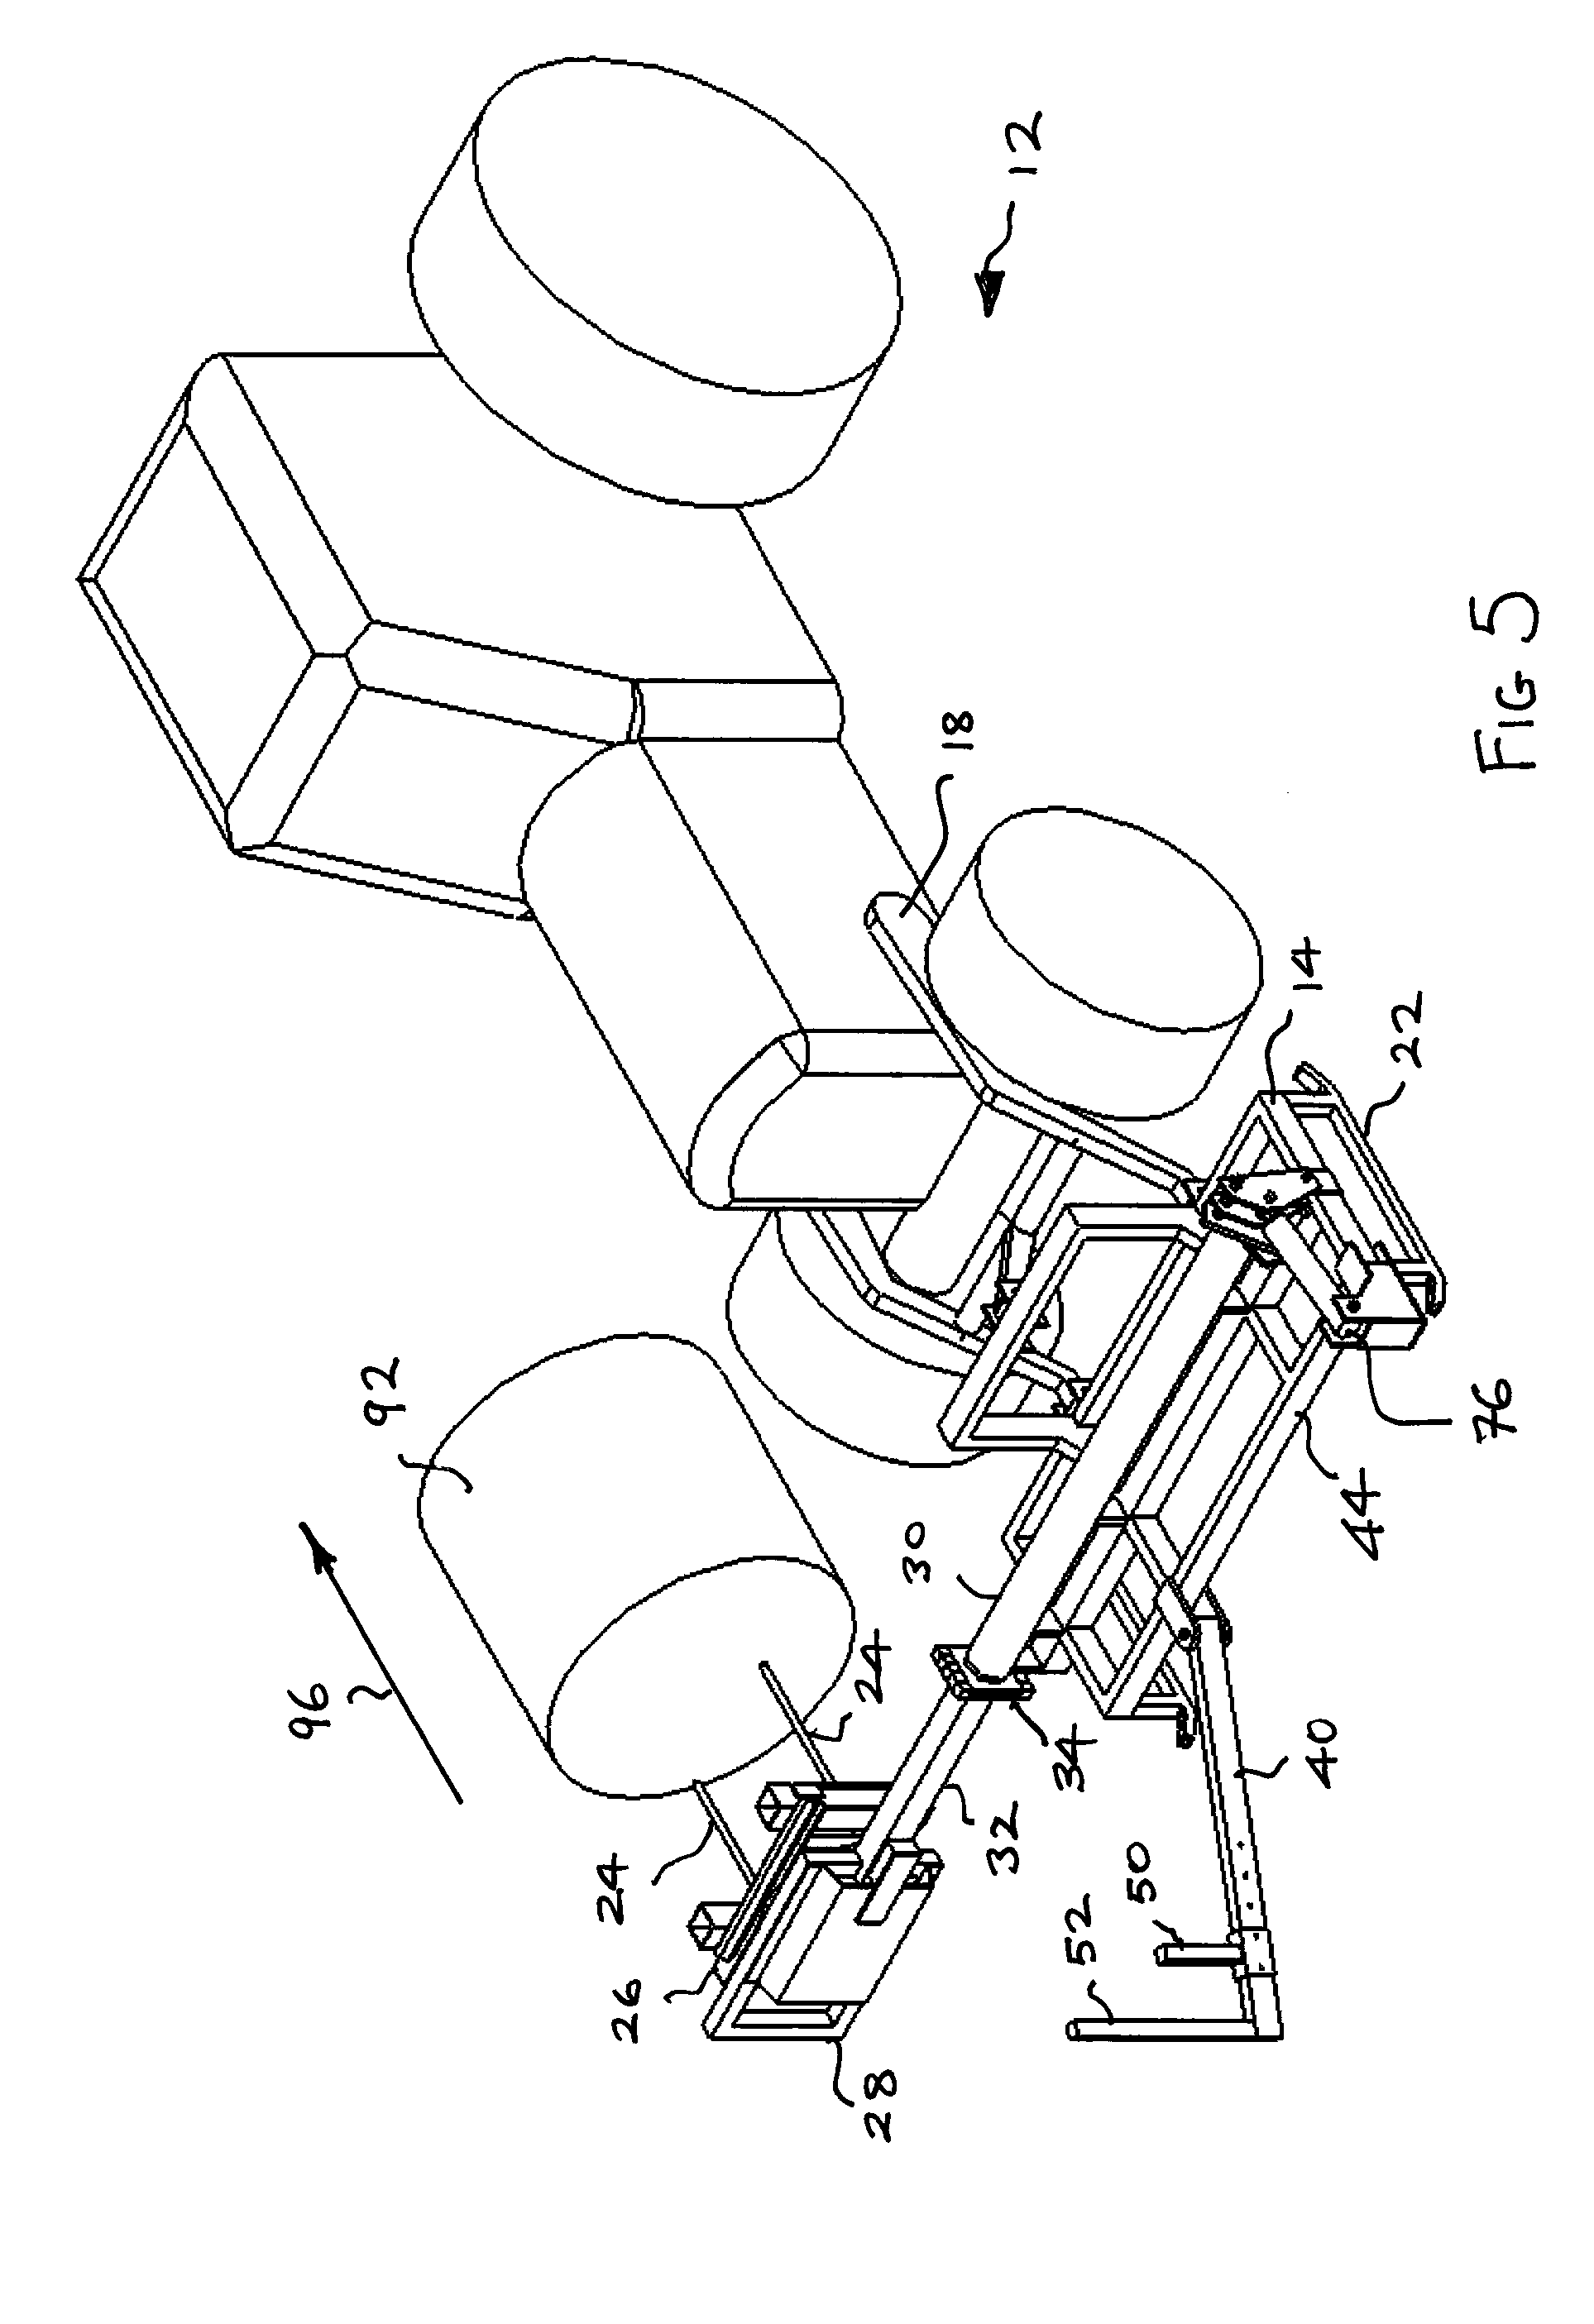 patent us20130255196 bale wrapping apparatus patents Hay Wrapper patent drawing